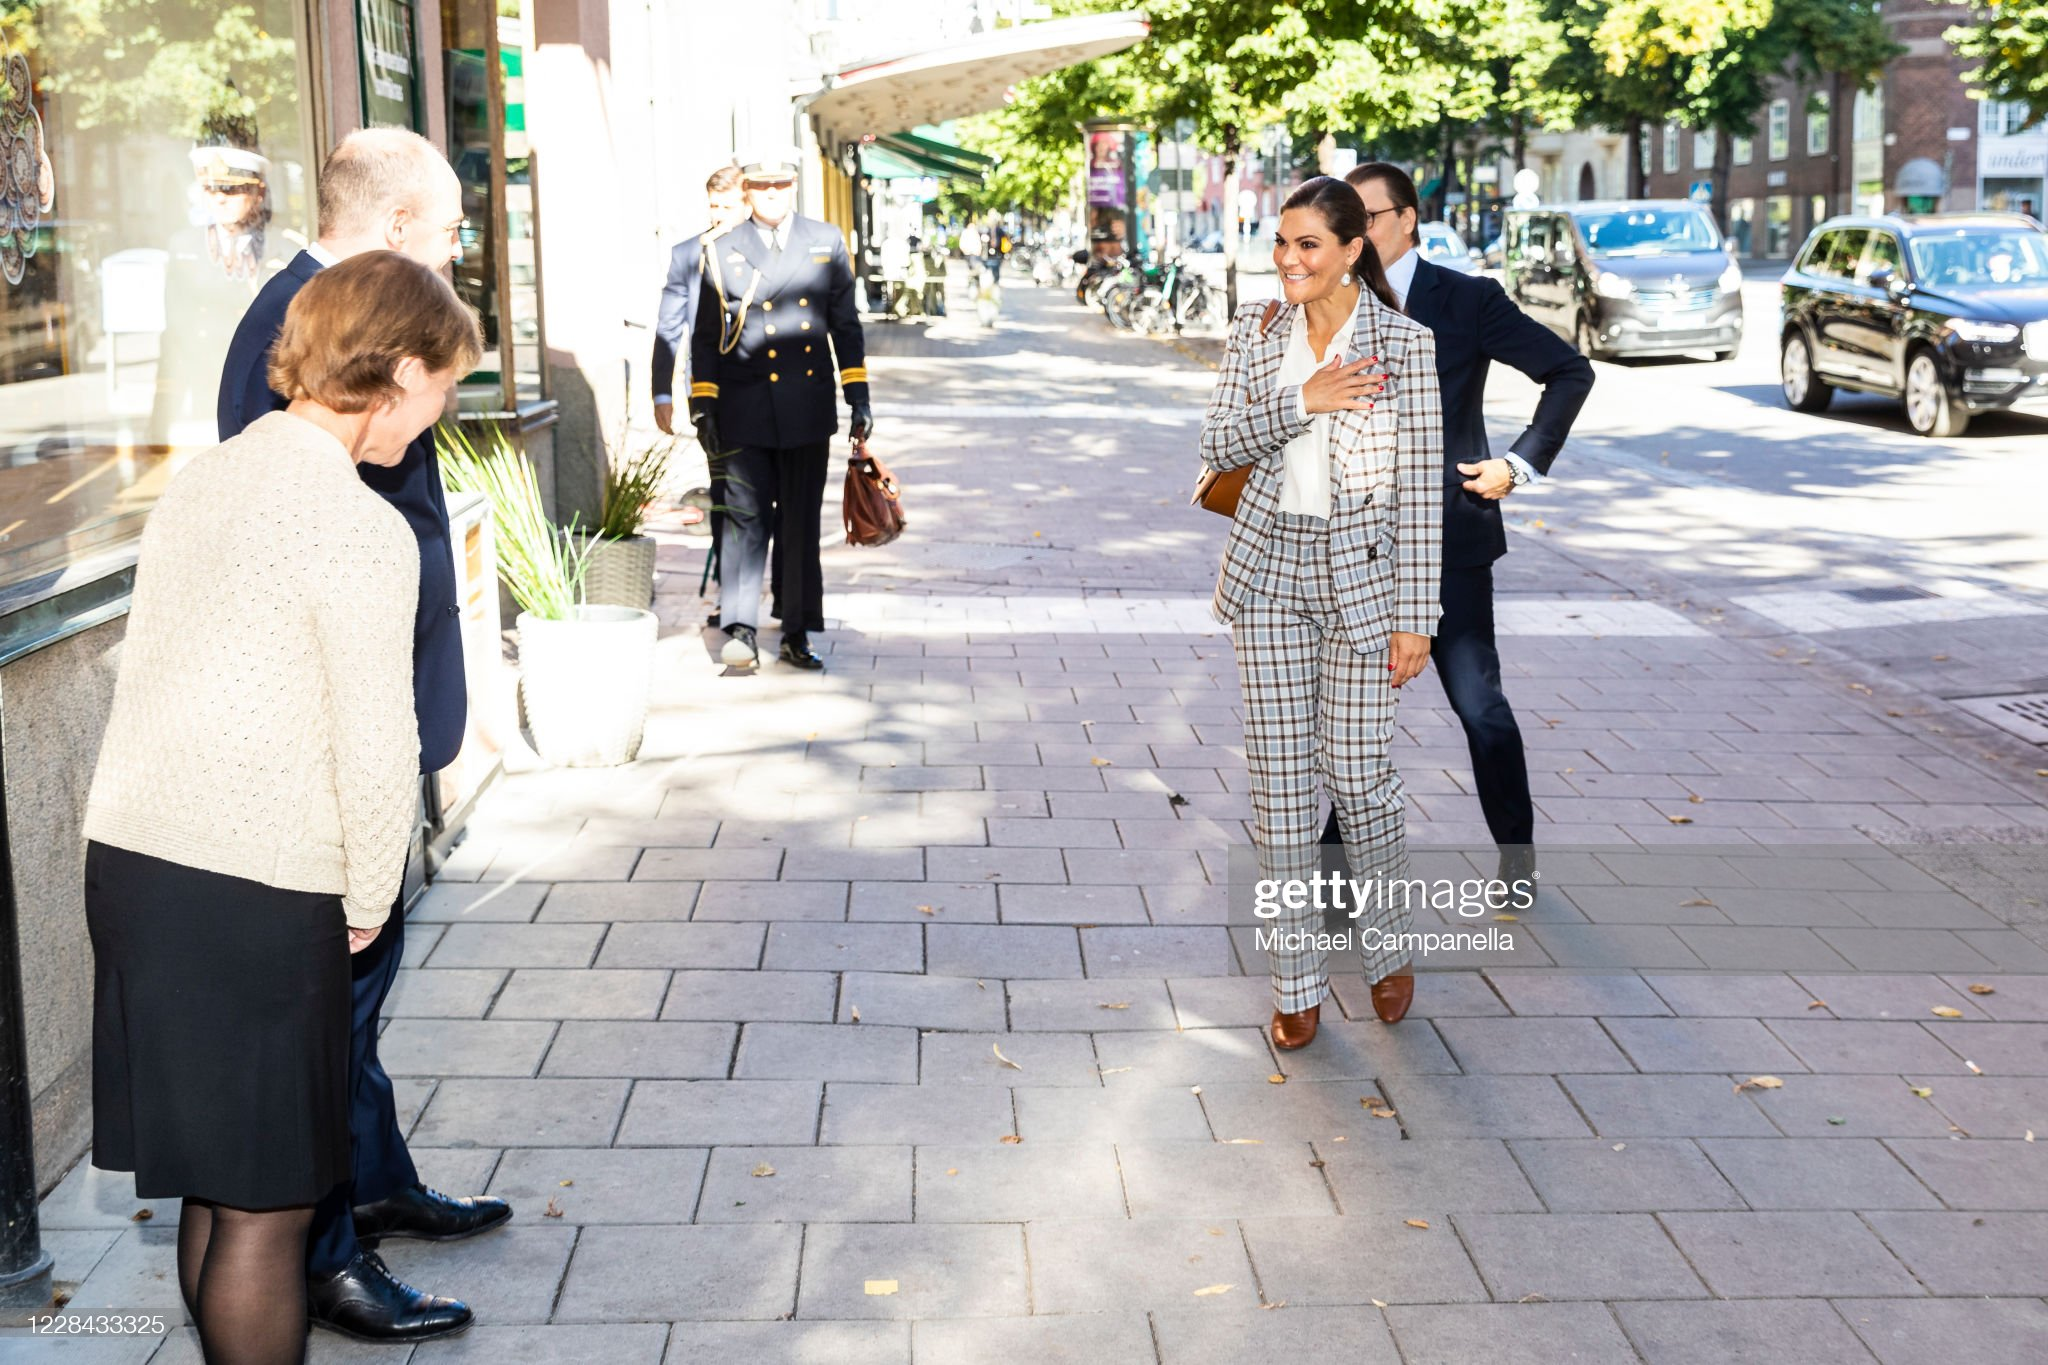 crown-princess-victoria-and-prince-daniel-of-sweden-visit-the-swedish-picture-id1228433325